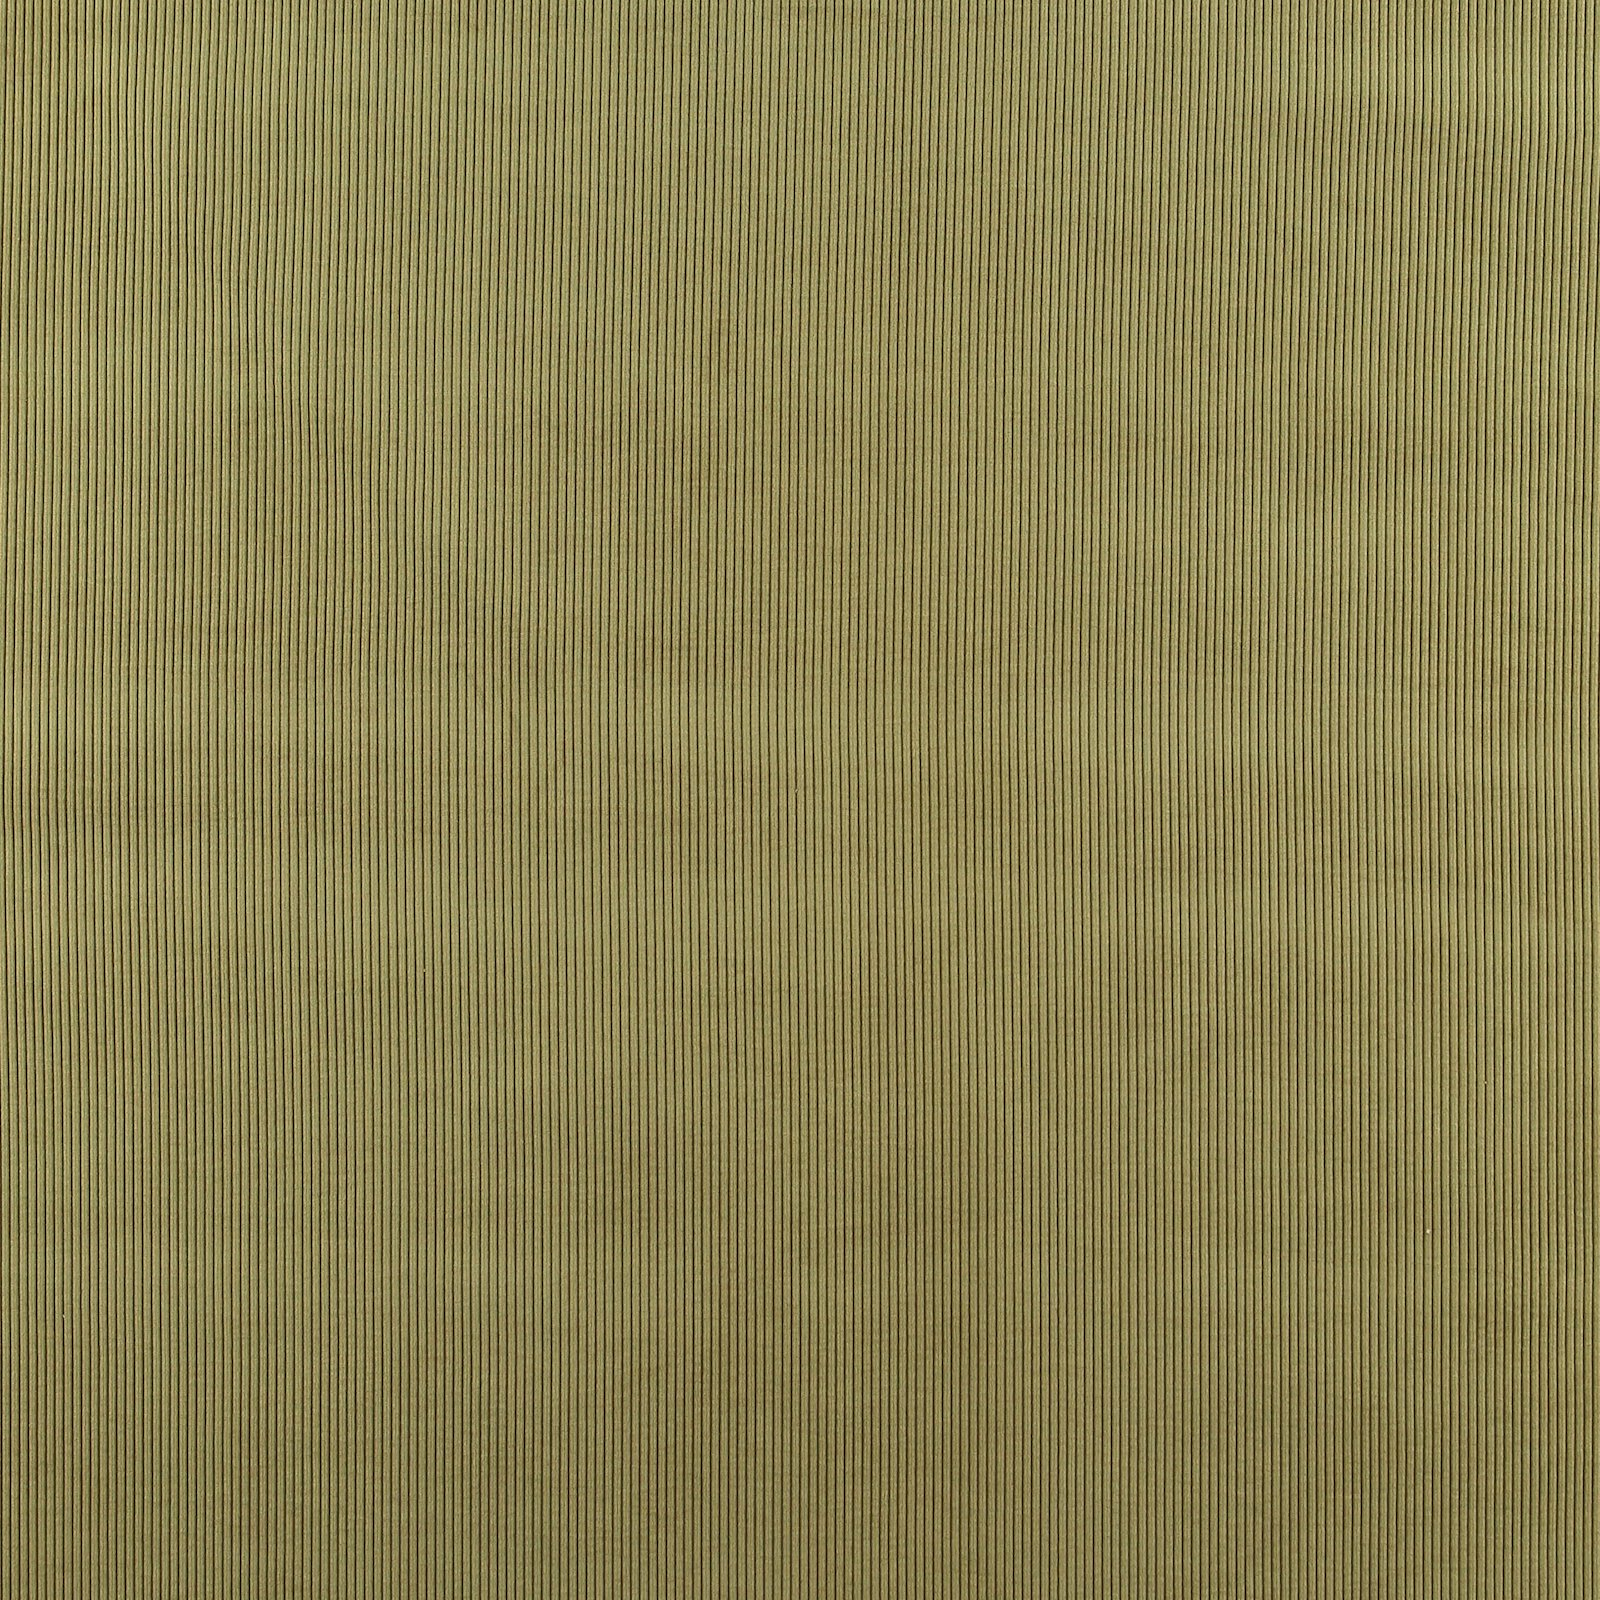 Upholstery corduroy 6 wales dusty olive 824155_pack_sp